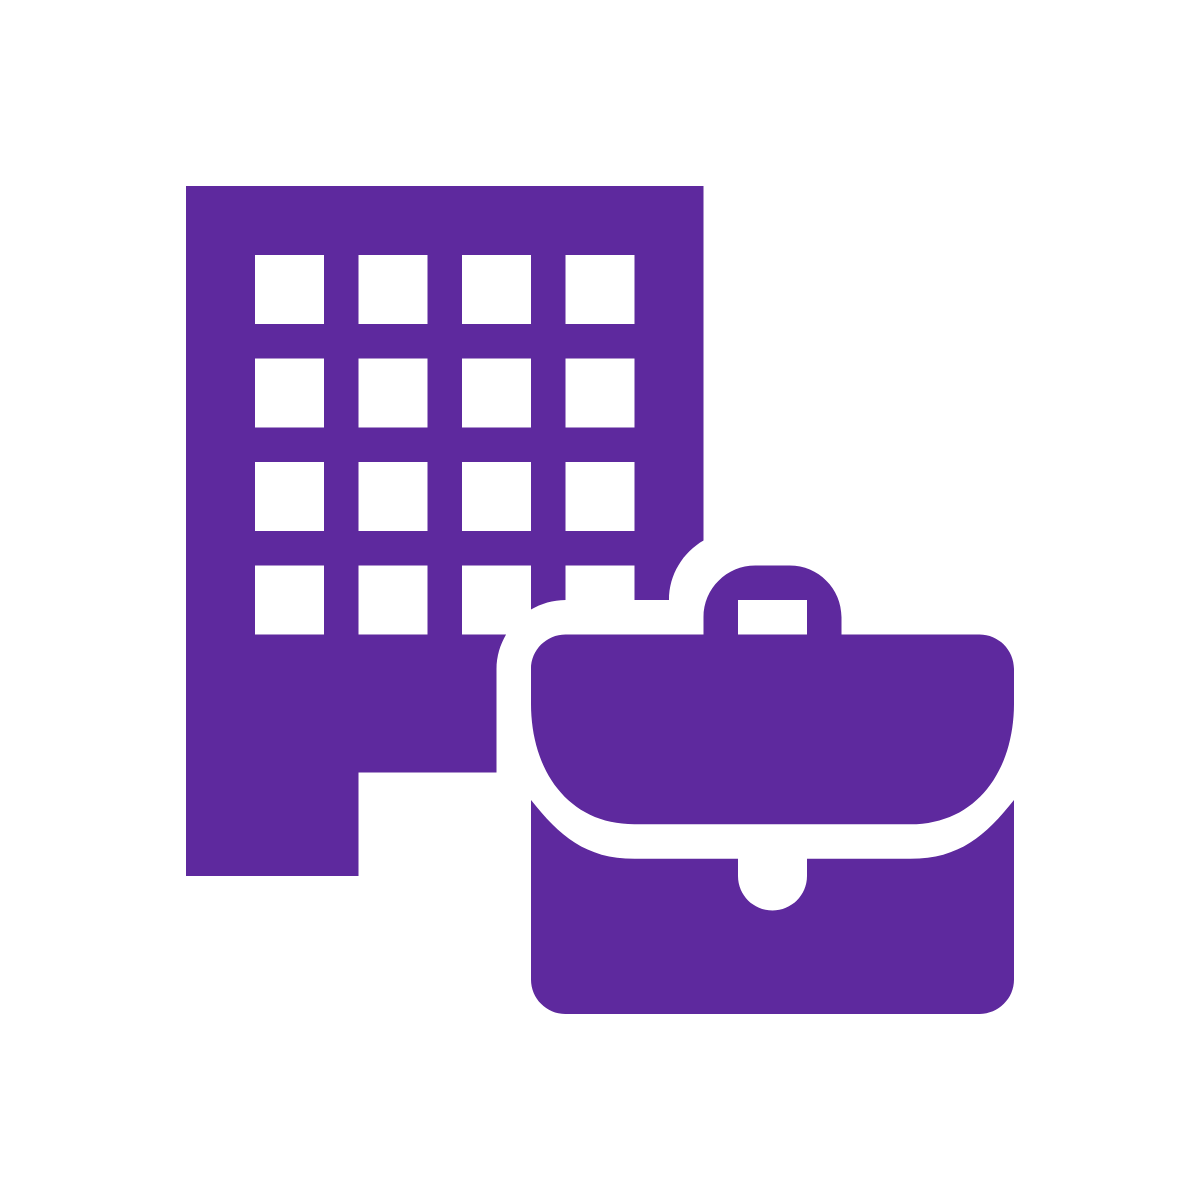 Icon of building and briefcase